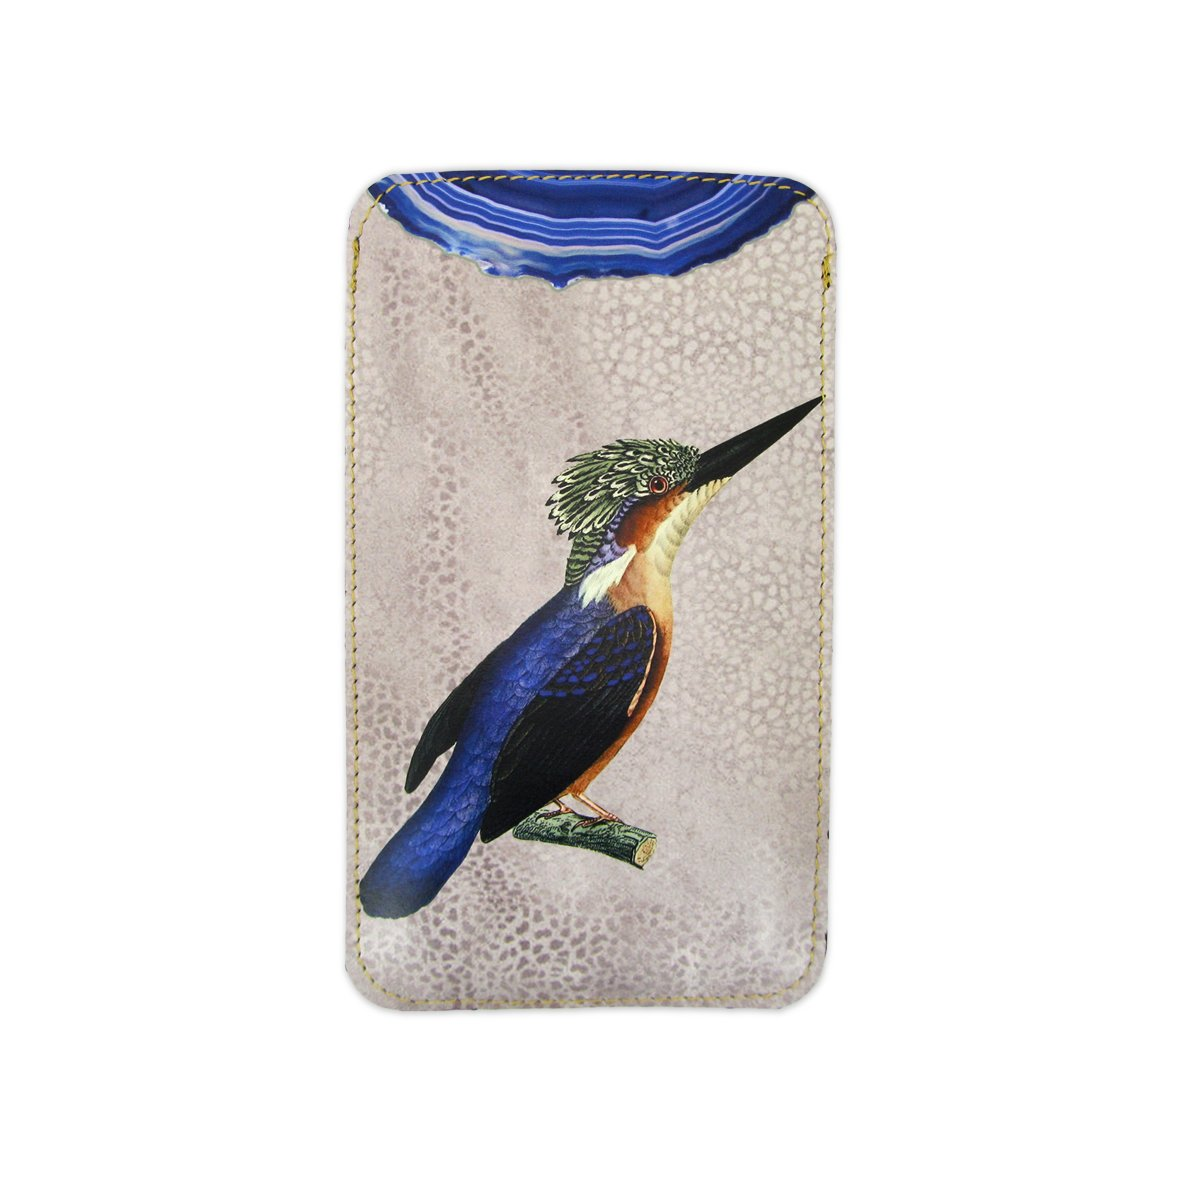 Leather Phone Case Sleeve - Kingfisher Phone case Tovi Sorga iPhone XR No personalisation Blue